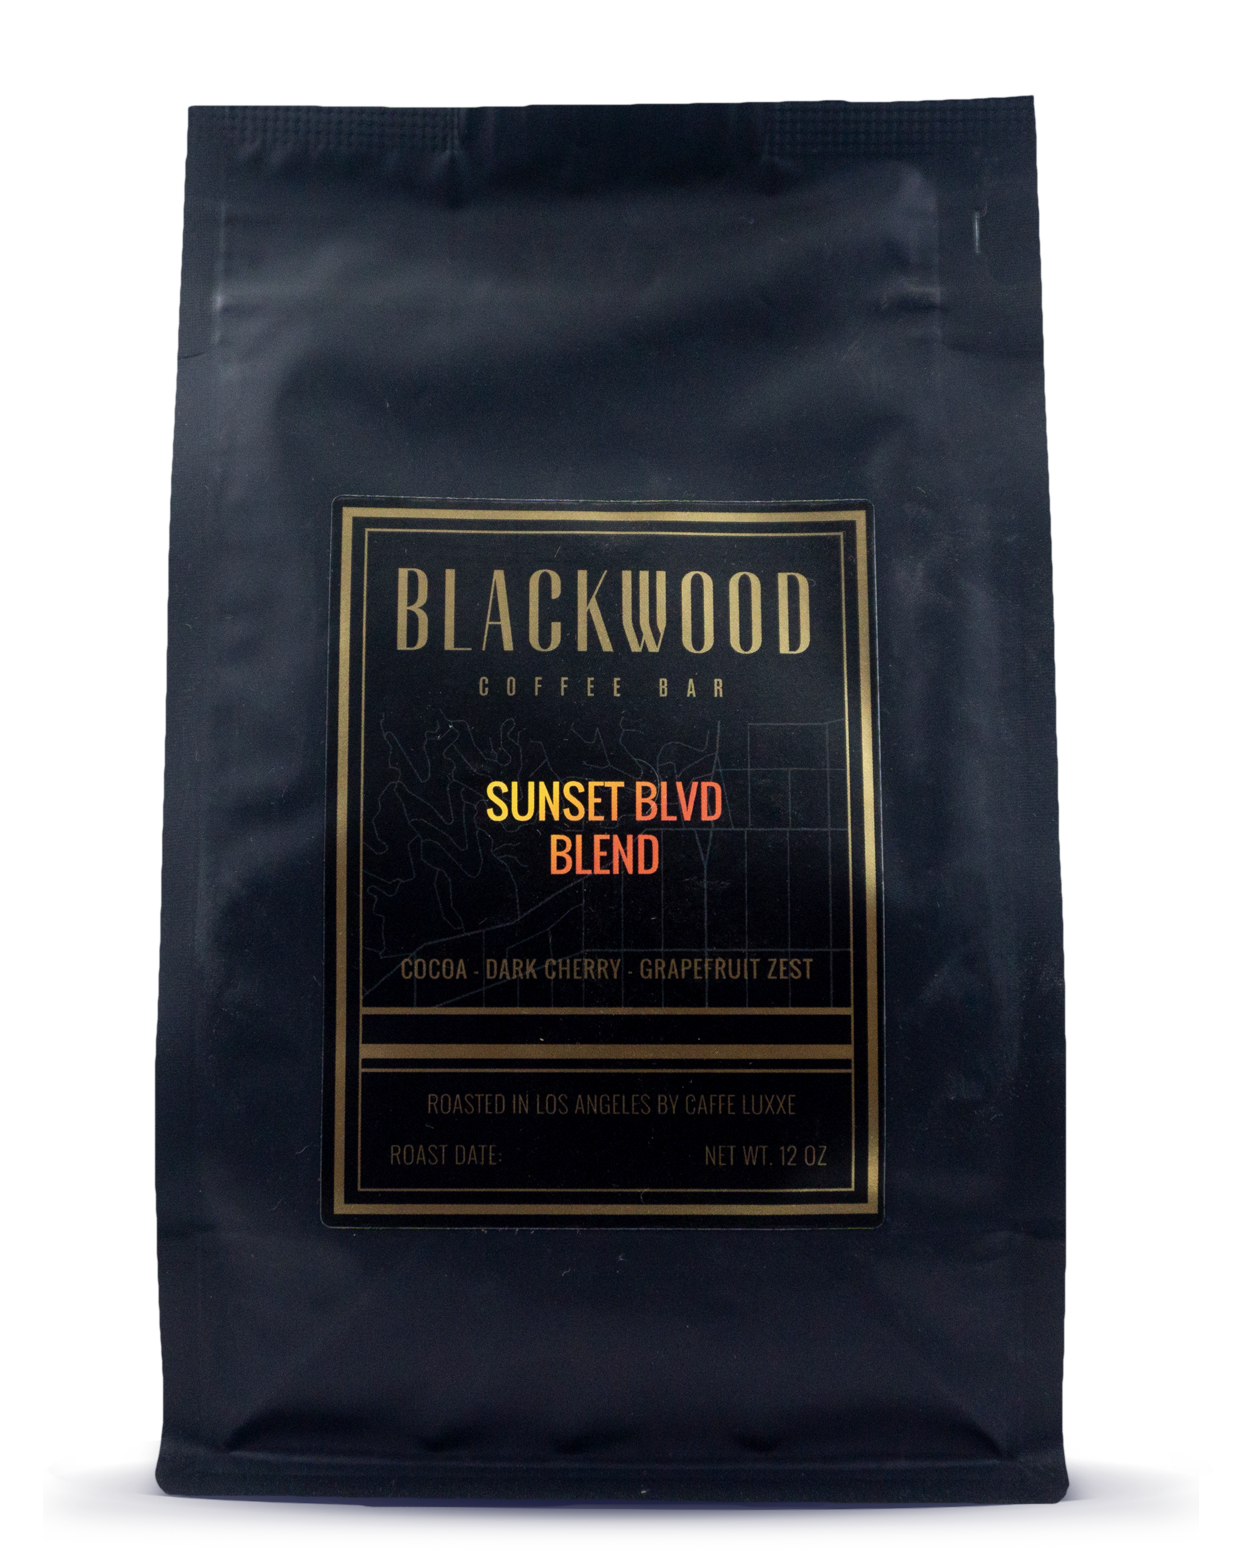 Sunset Blvd Blend (4-Week Subscription)